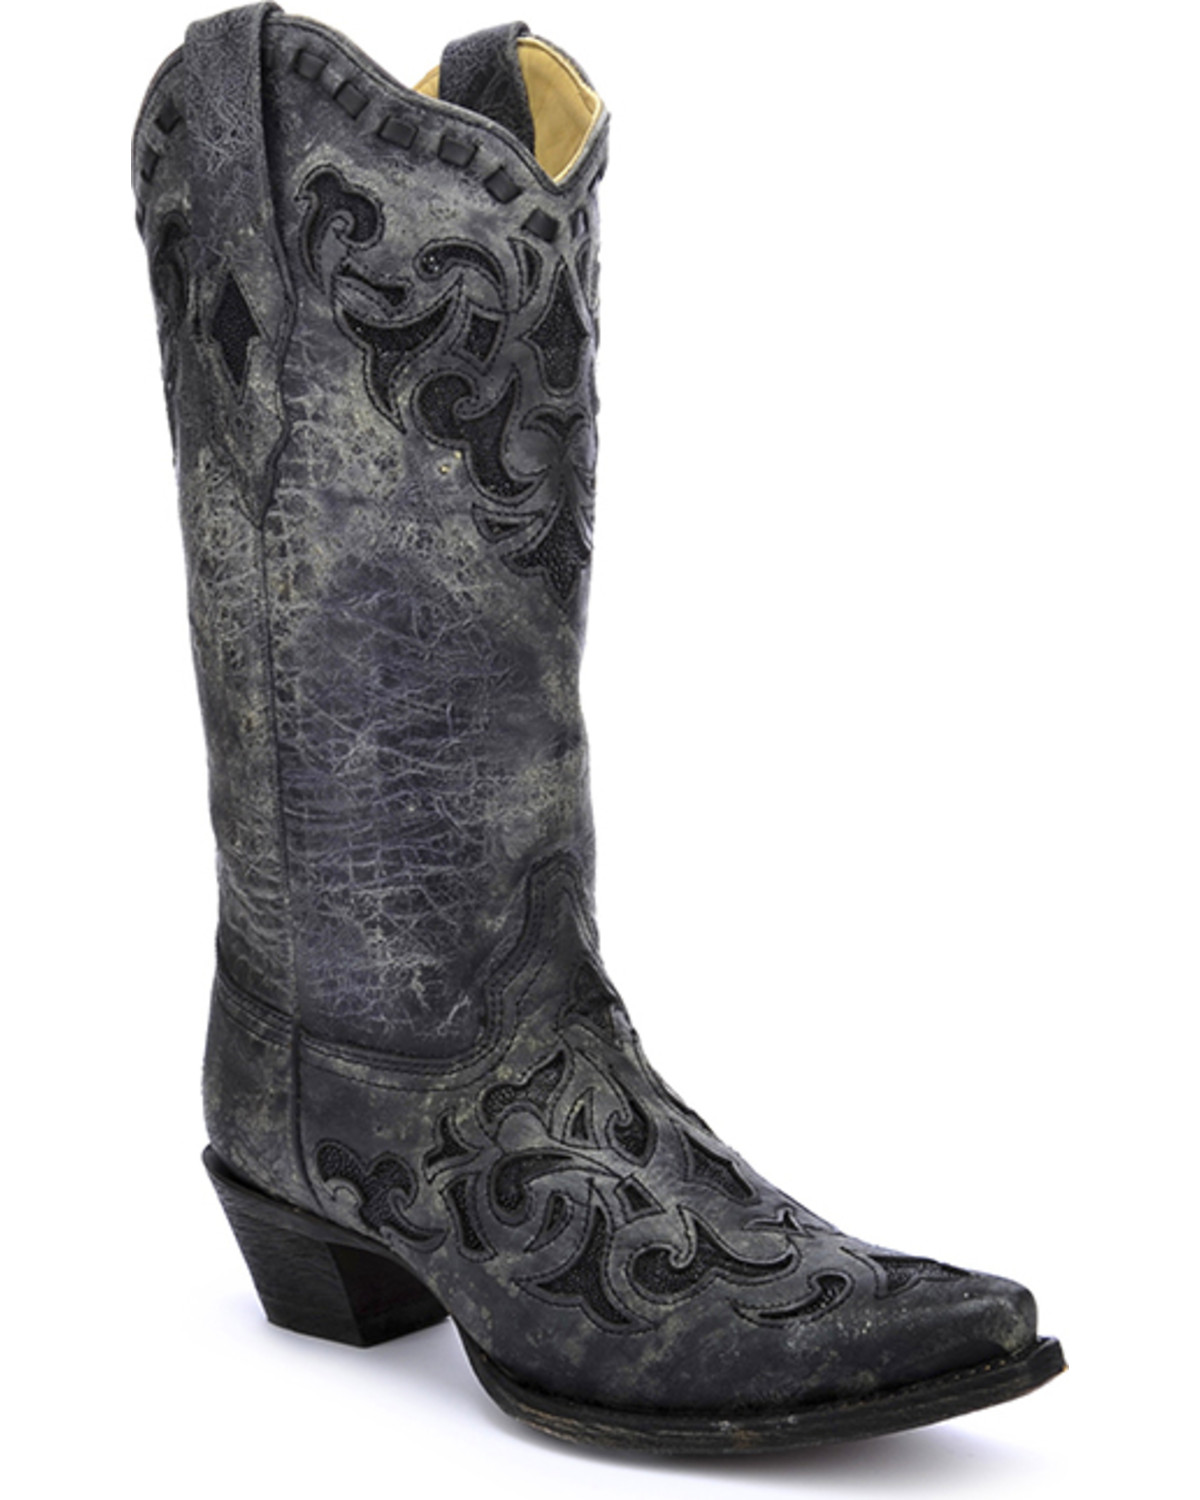 corral s metallic stingray inlay western boots